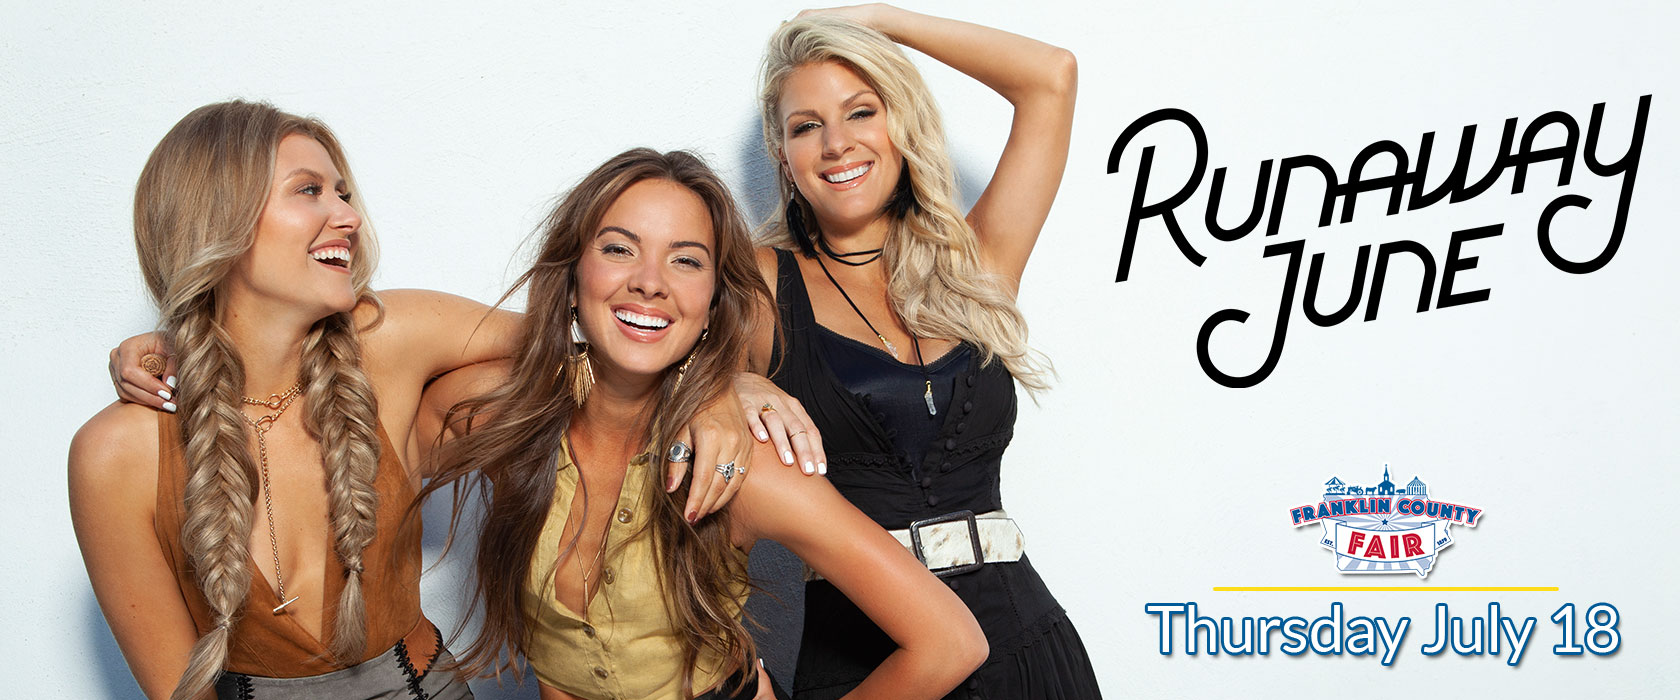 Franklin County Fair Runaway June - Thursday July 18